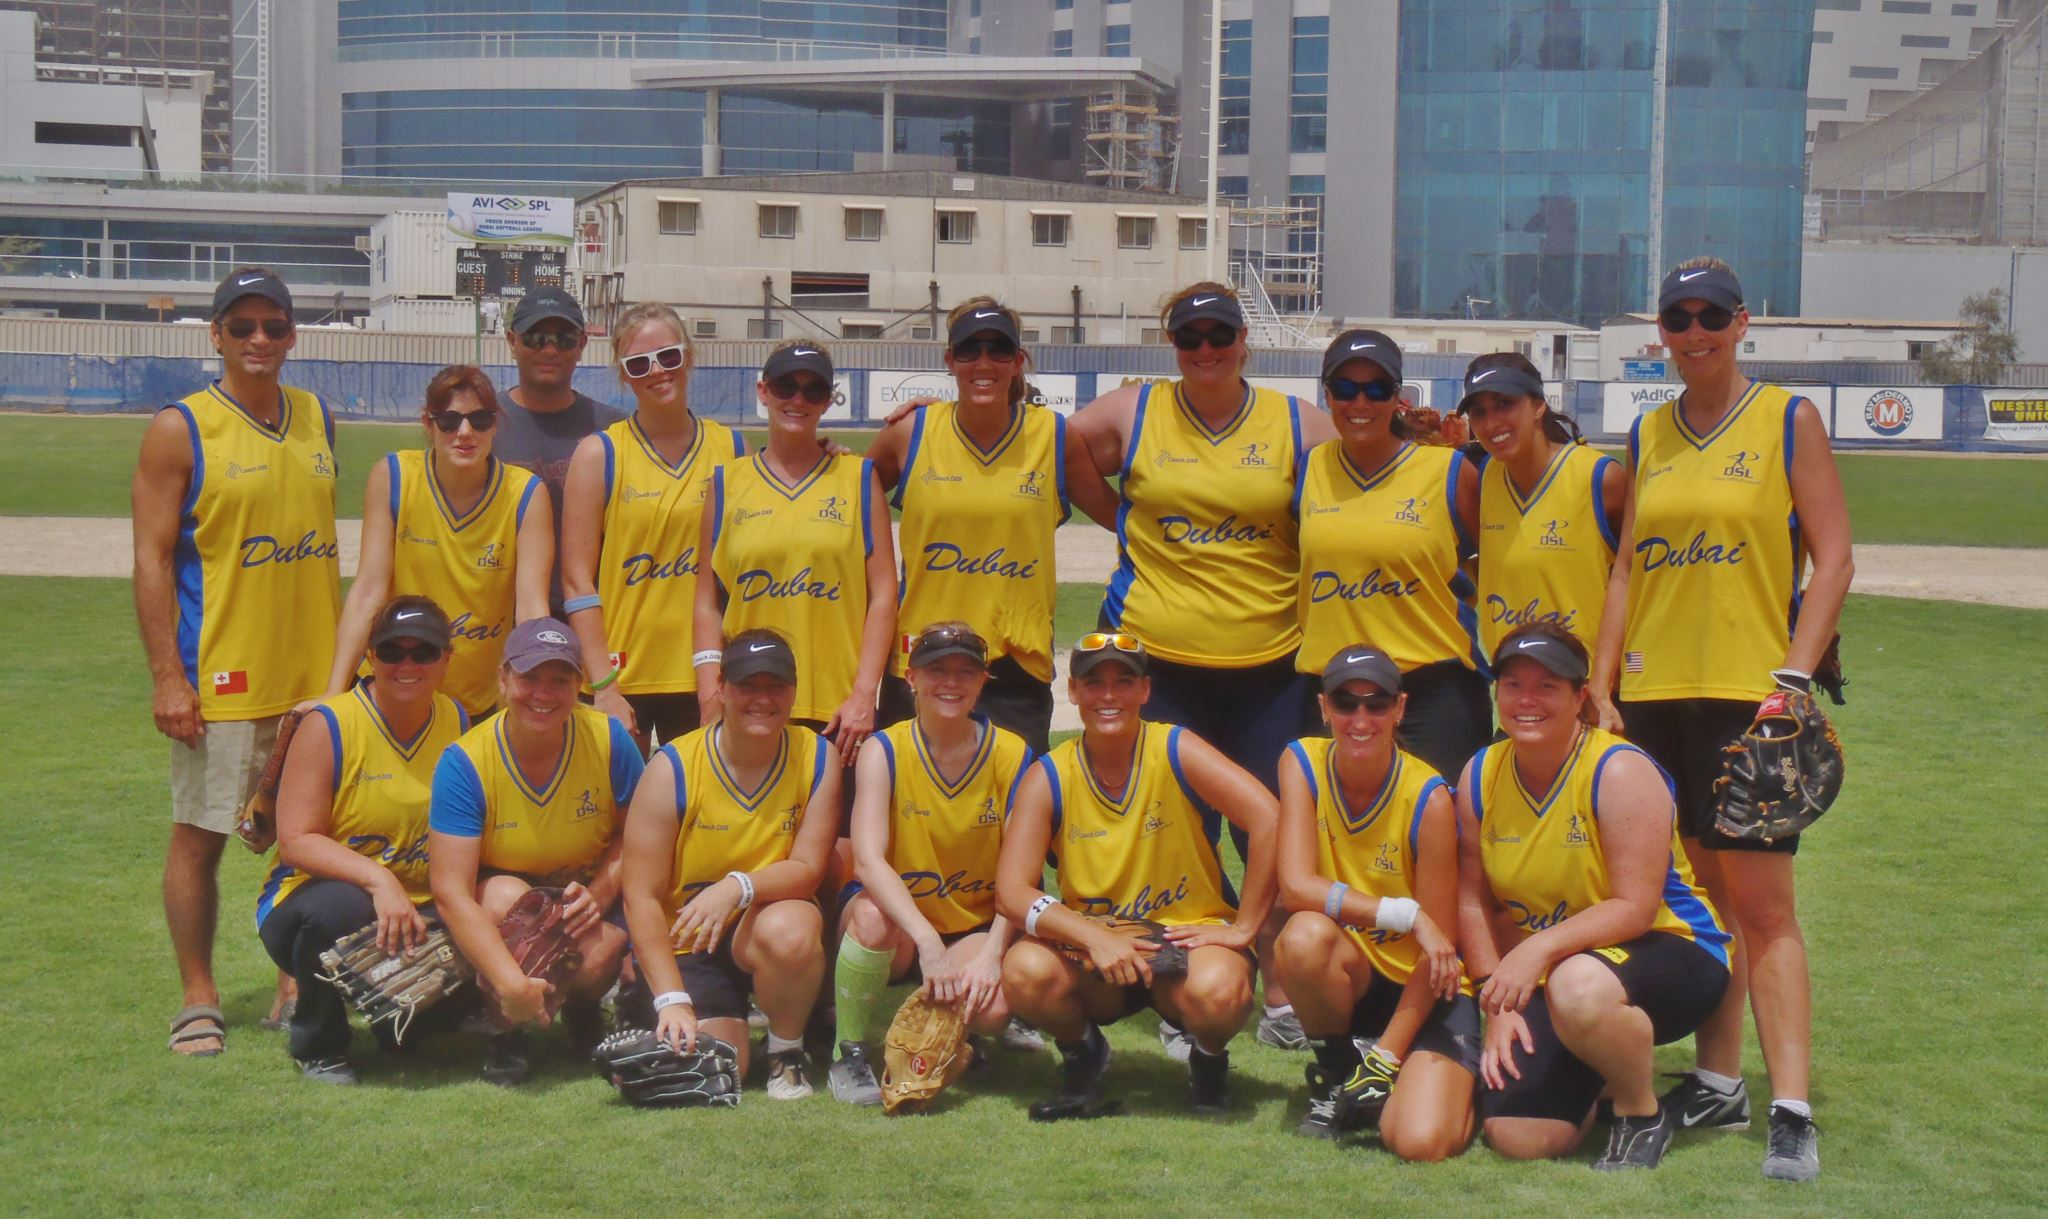 DUBAI CHICKS 2012 MIDDLE EAST SOFTBALL CHAMPIONS